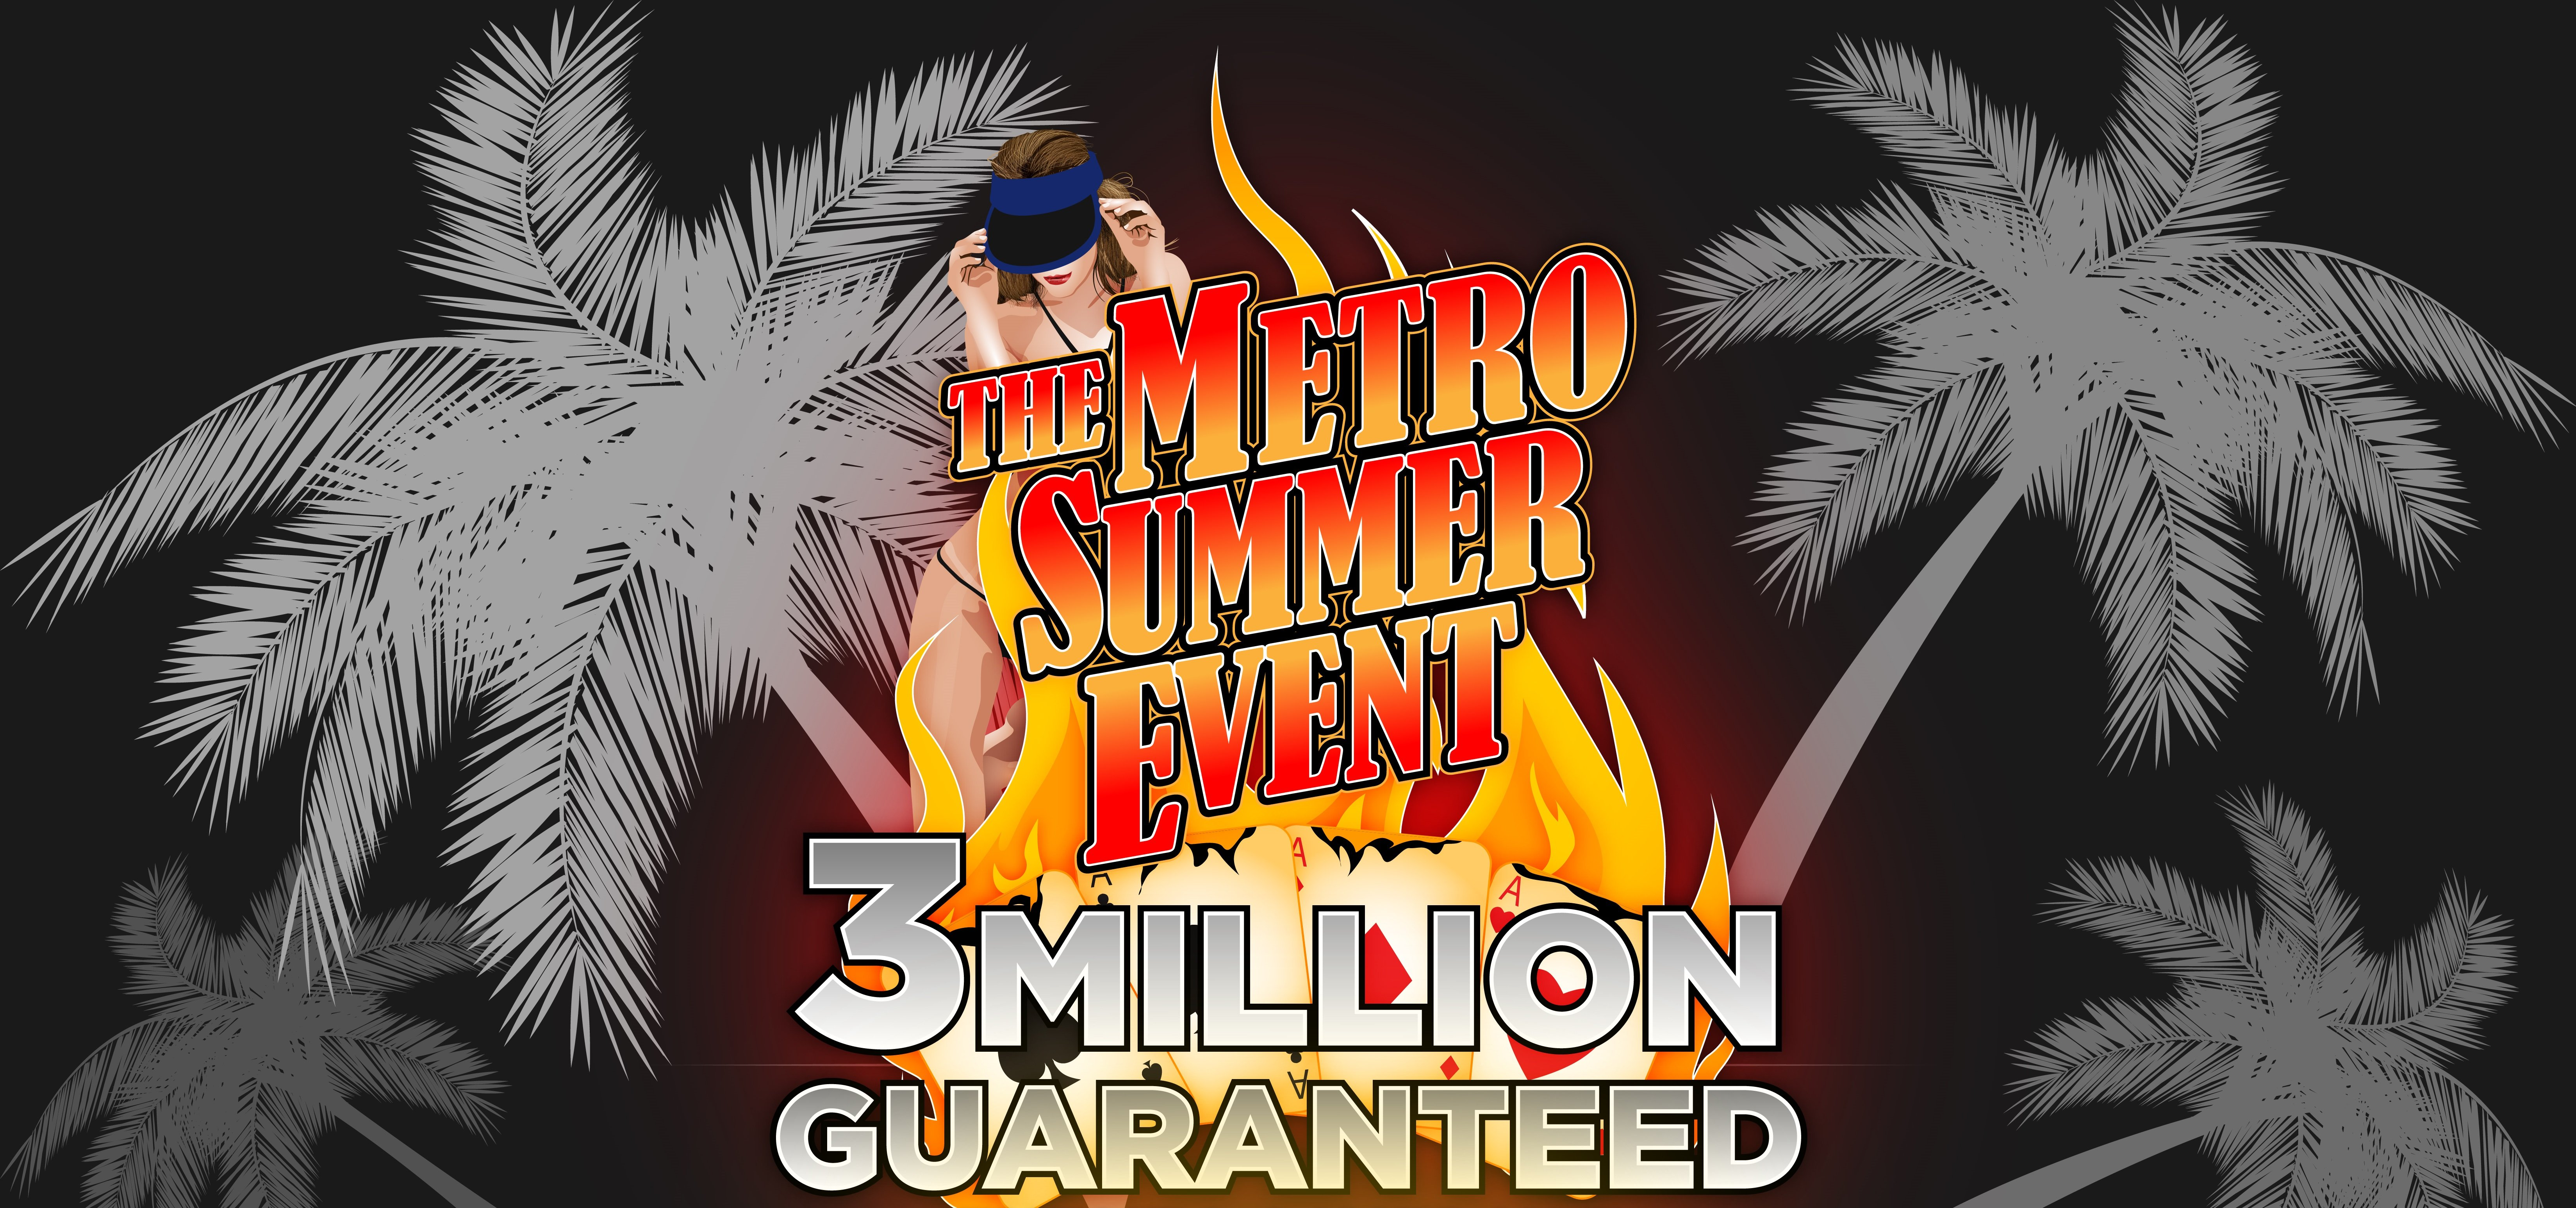 Metro Card Club Summer Event P3 Million Guaranteed begins tomorrow